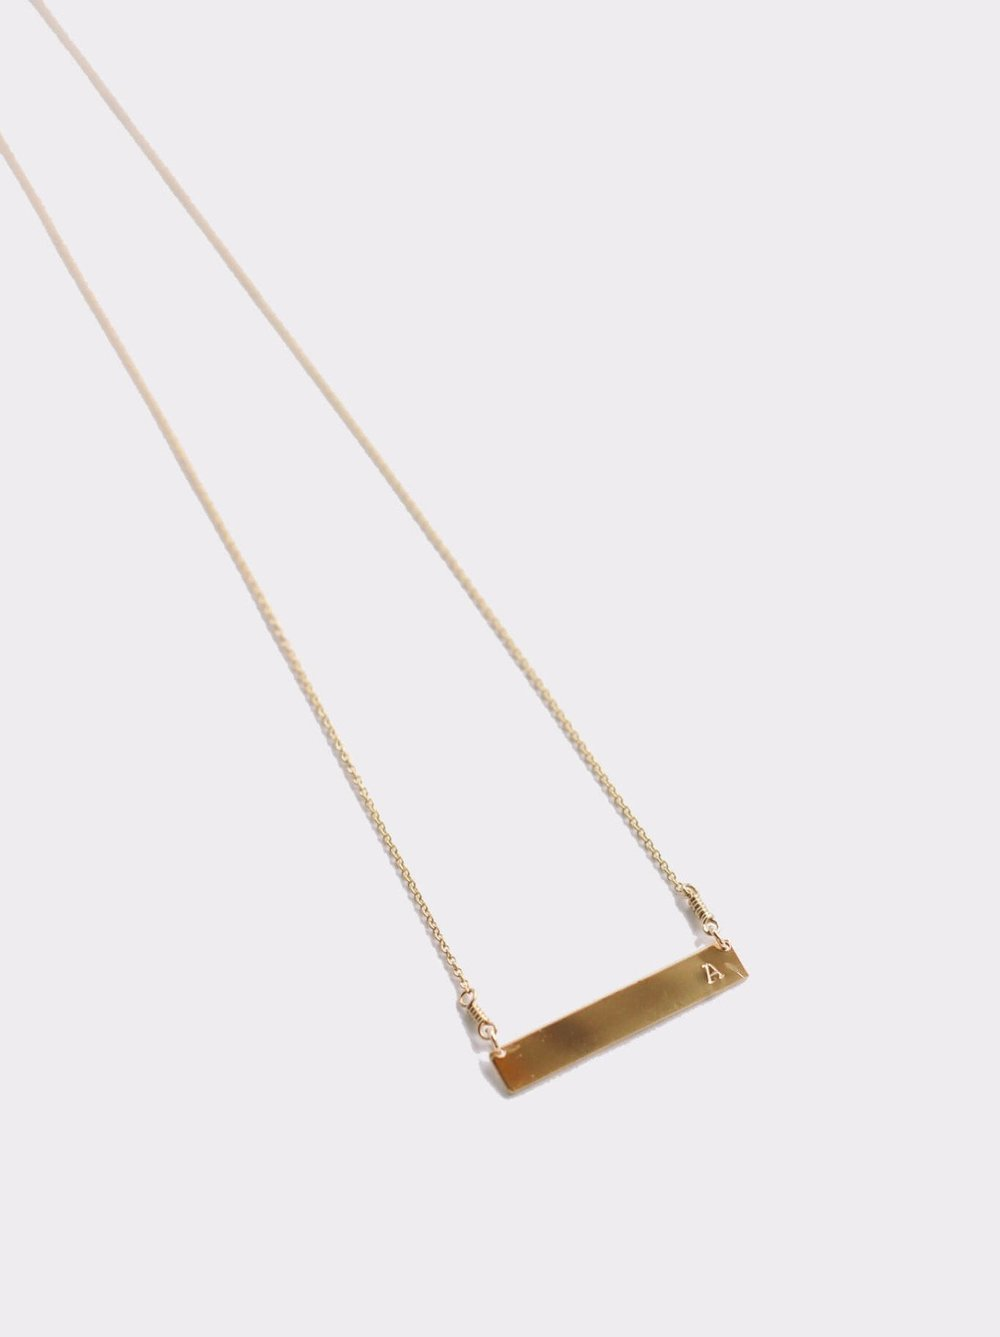 Fashionable Horizon Necklace  | $58